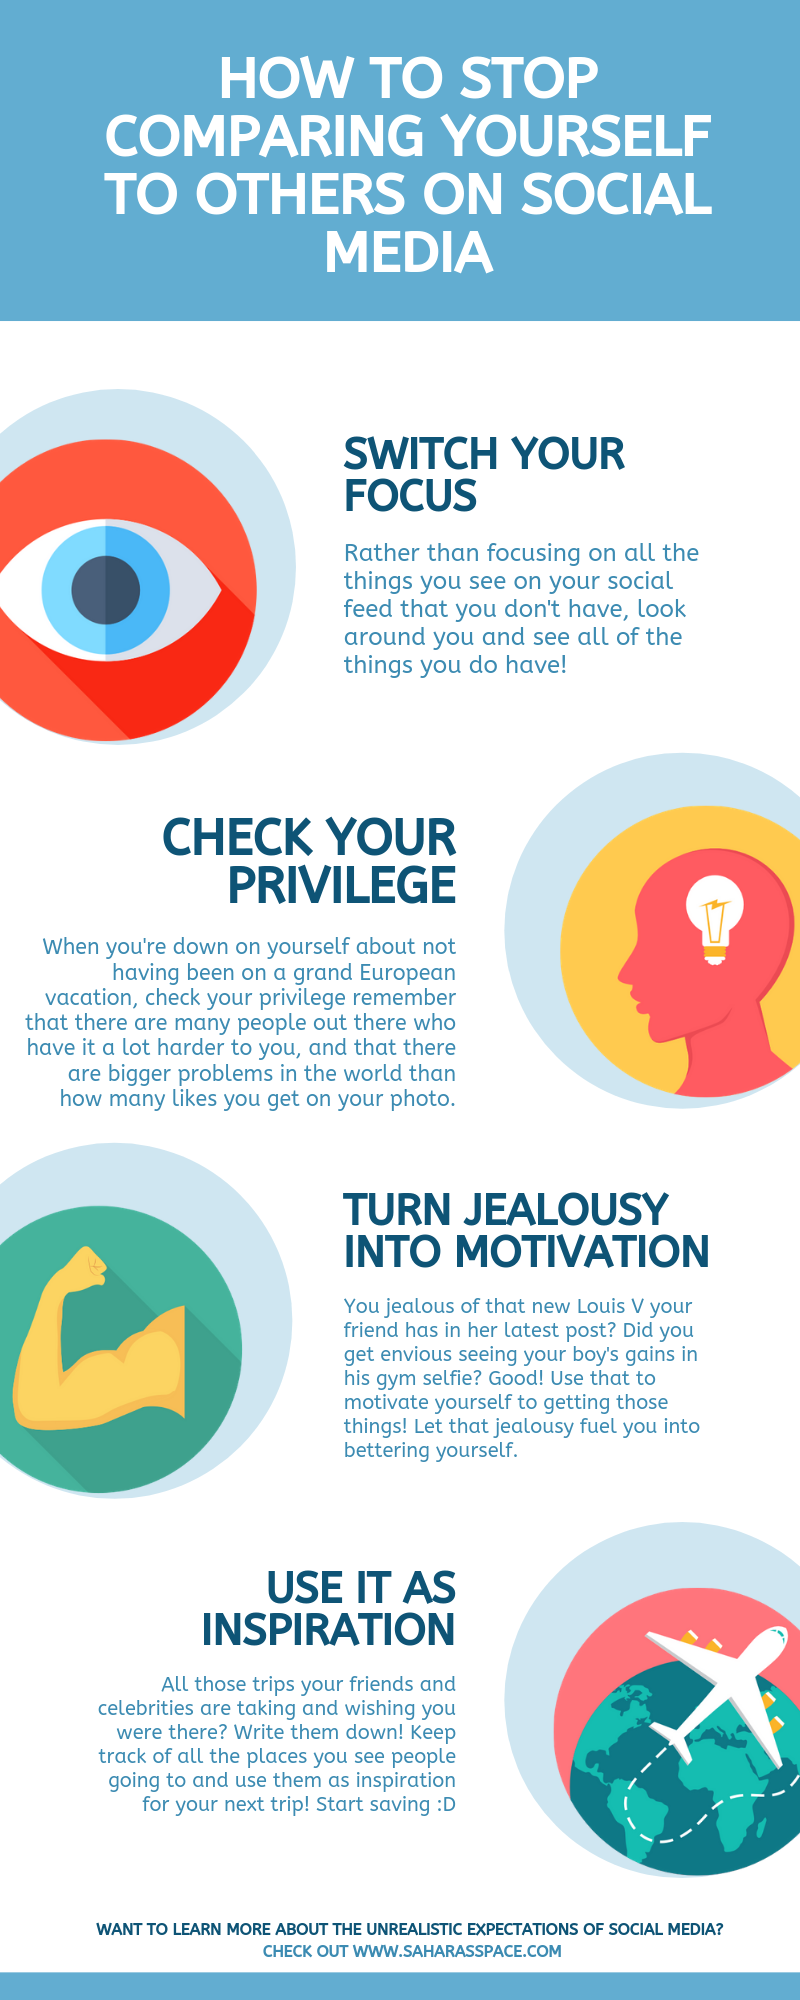 How to Stop Comparing Yourself on Social Media Infographic